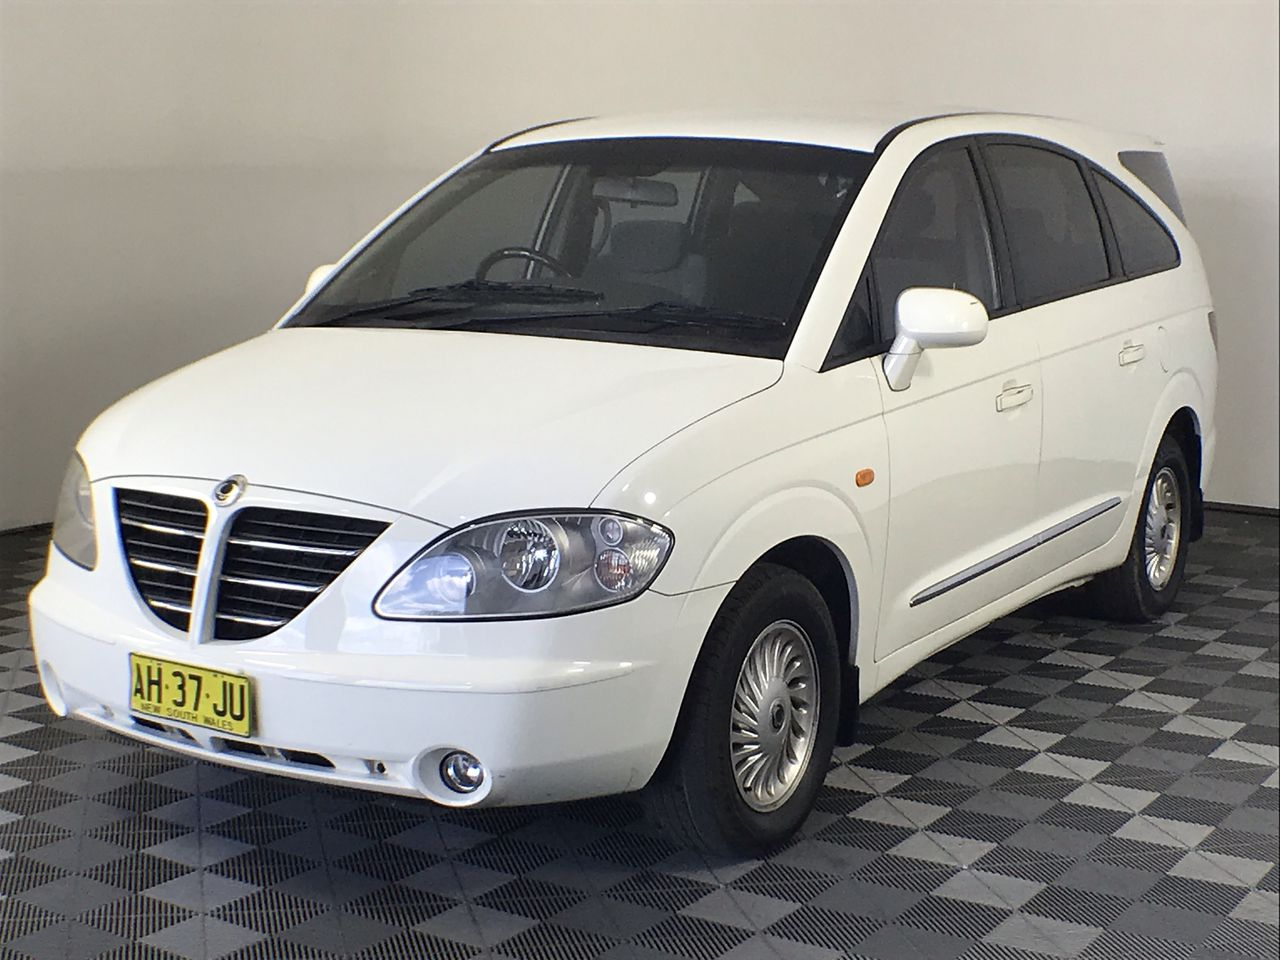 2005 SSANGYONG STAVIC Automatic 7 Seats SUV